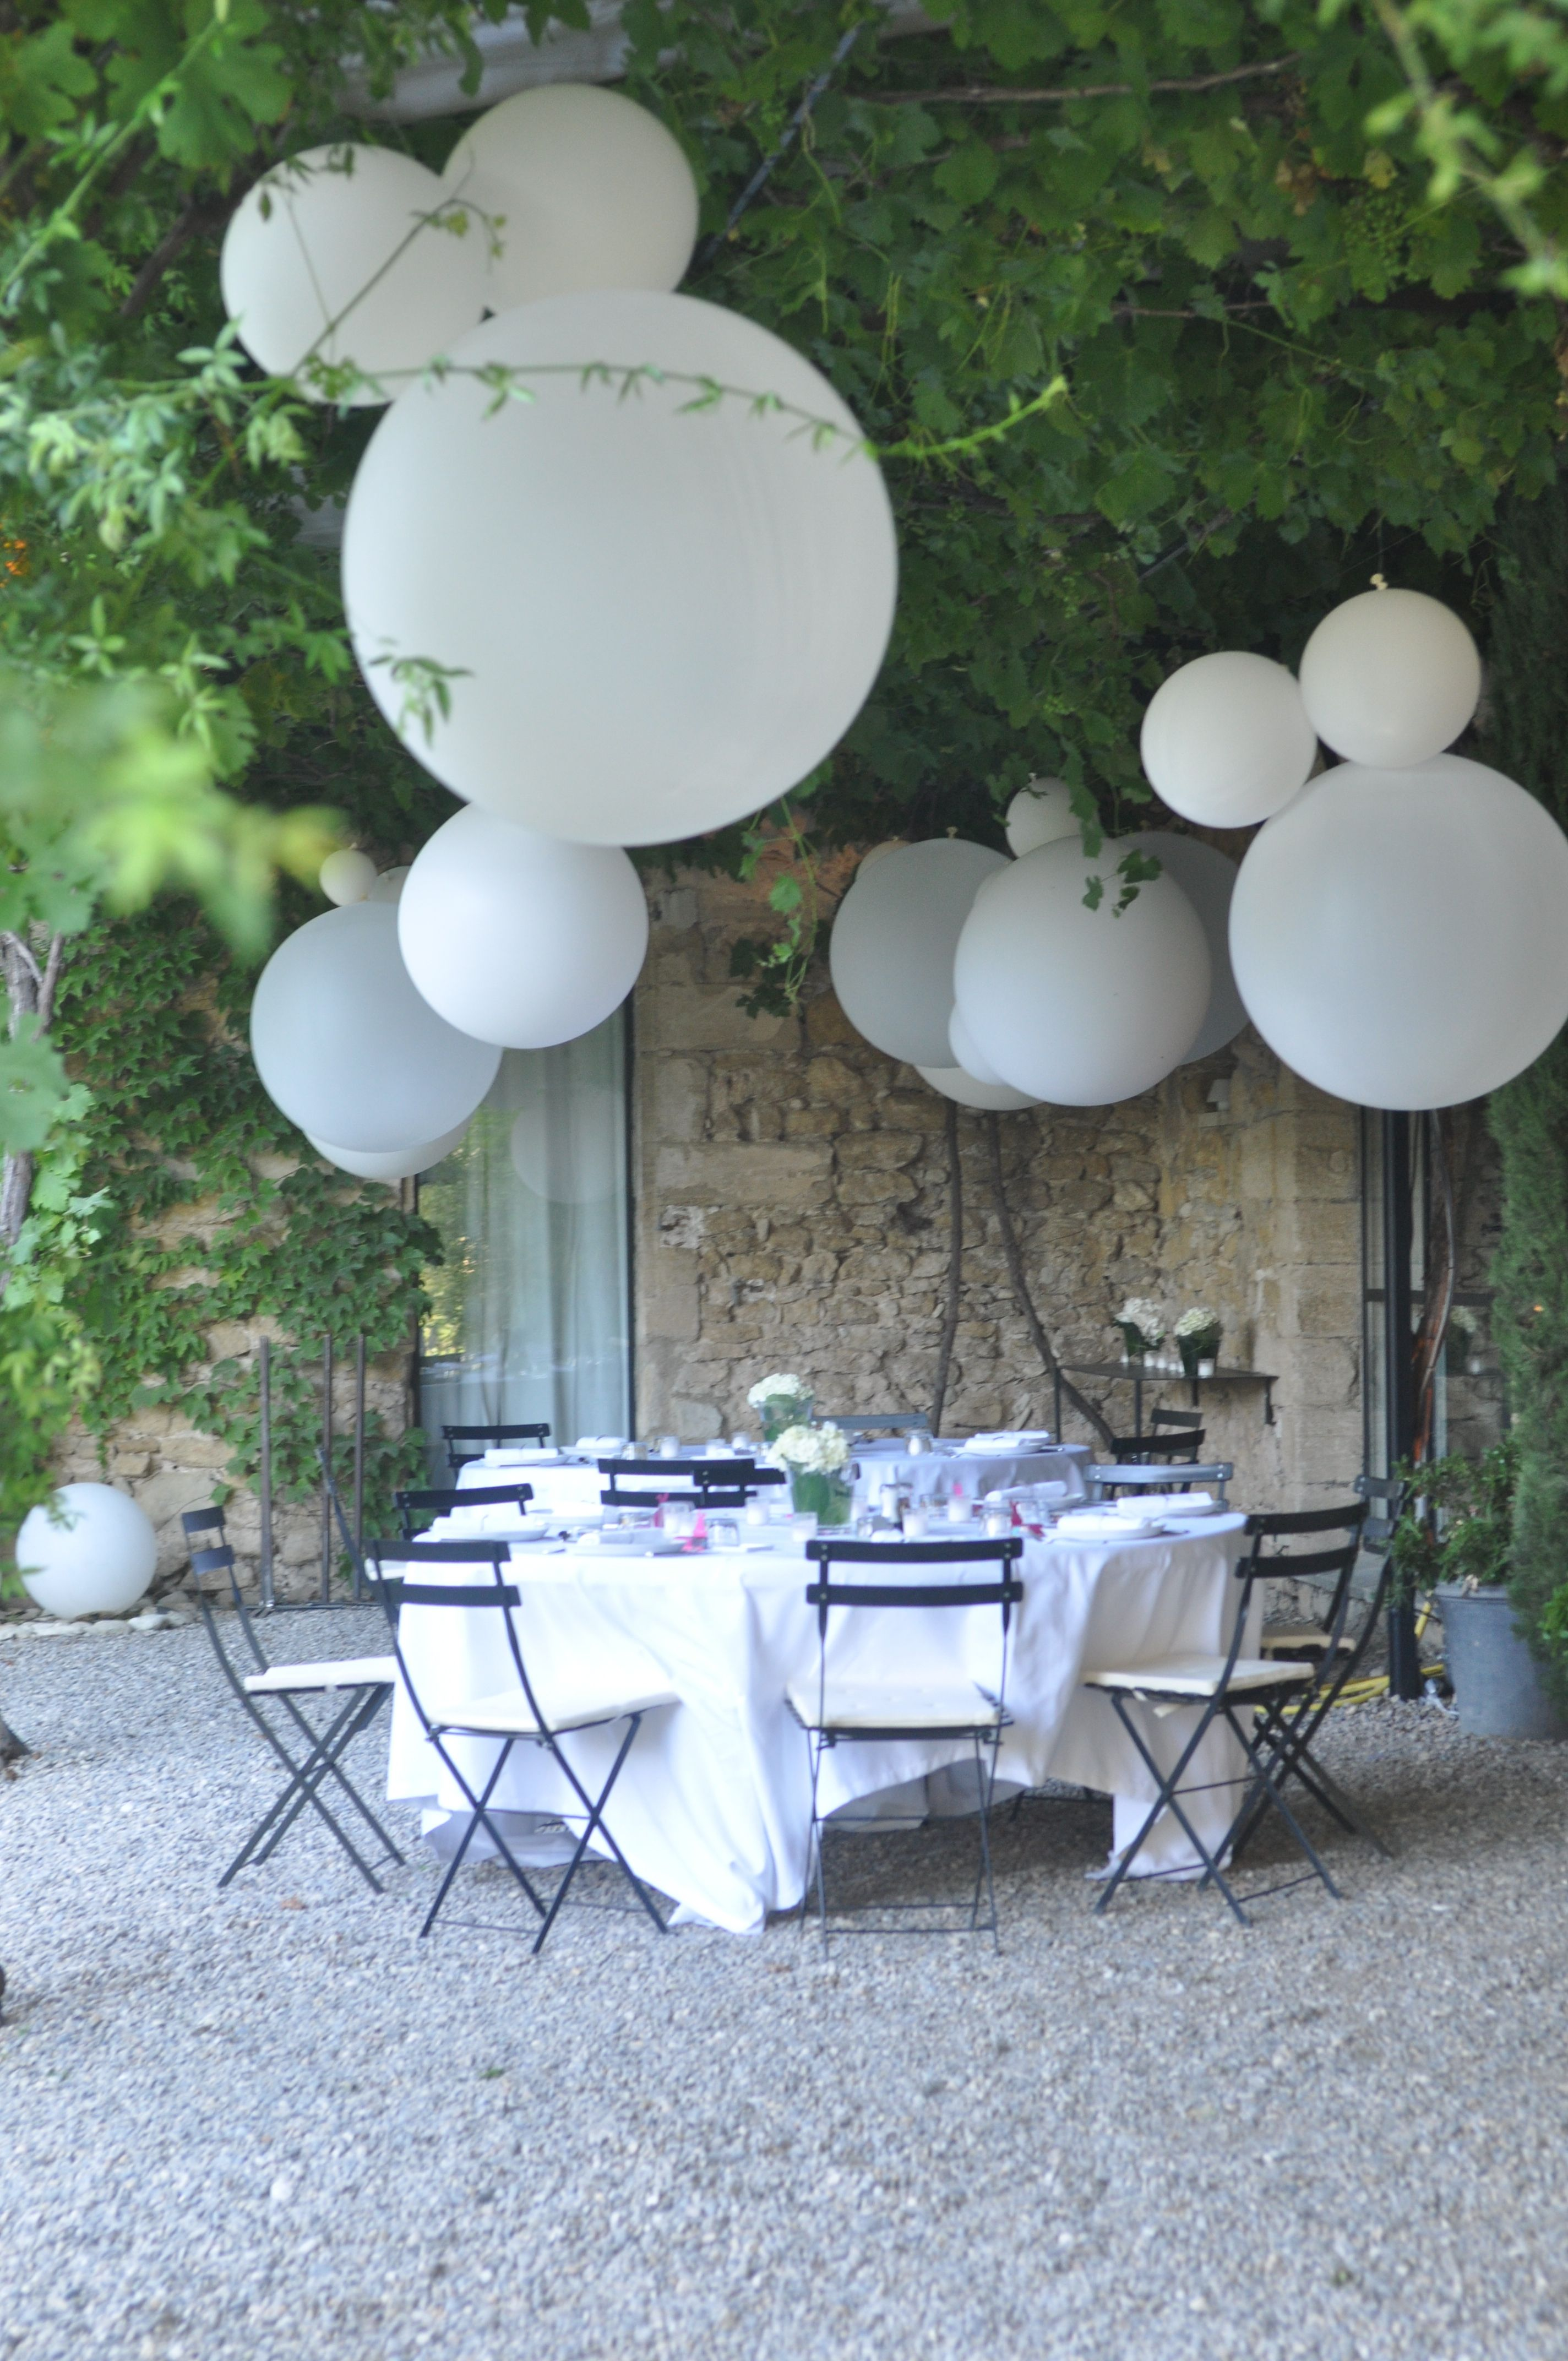 Outdoor Diner Wedding - Under the Pergola - South of France - Provence